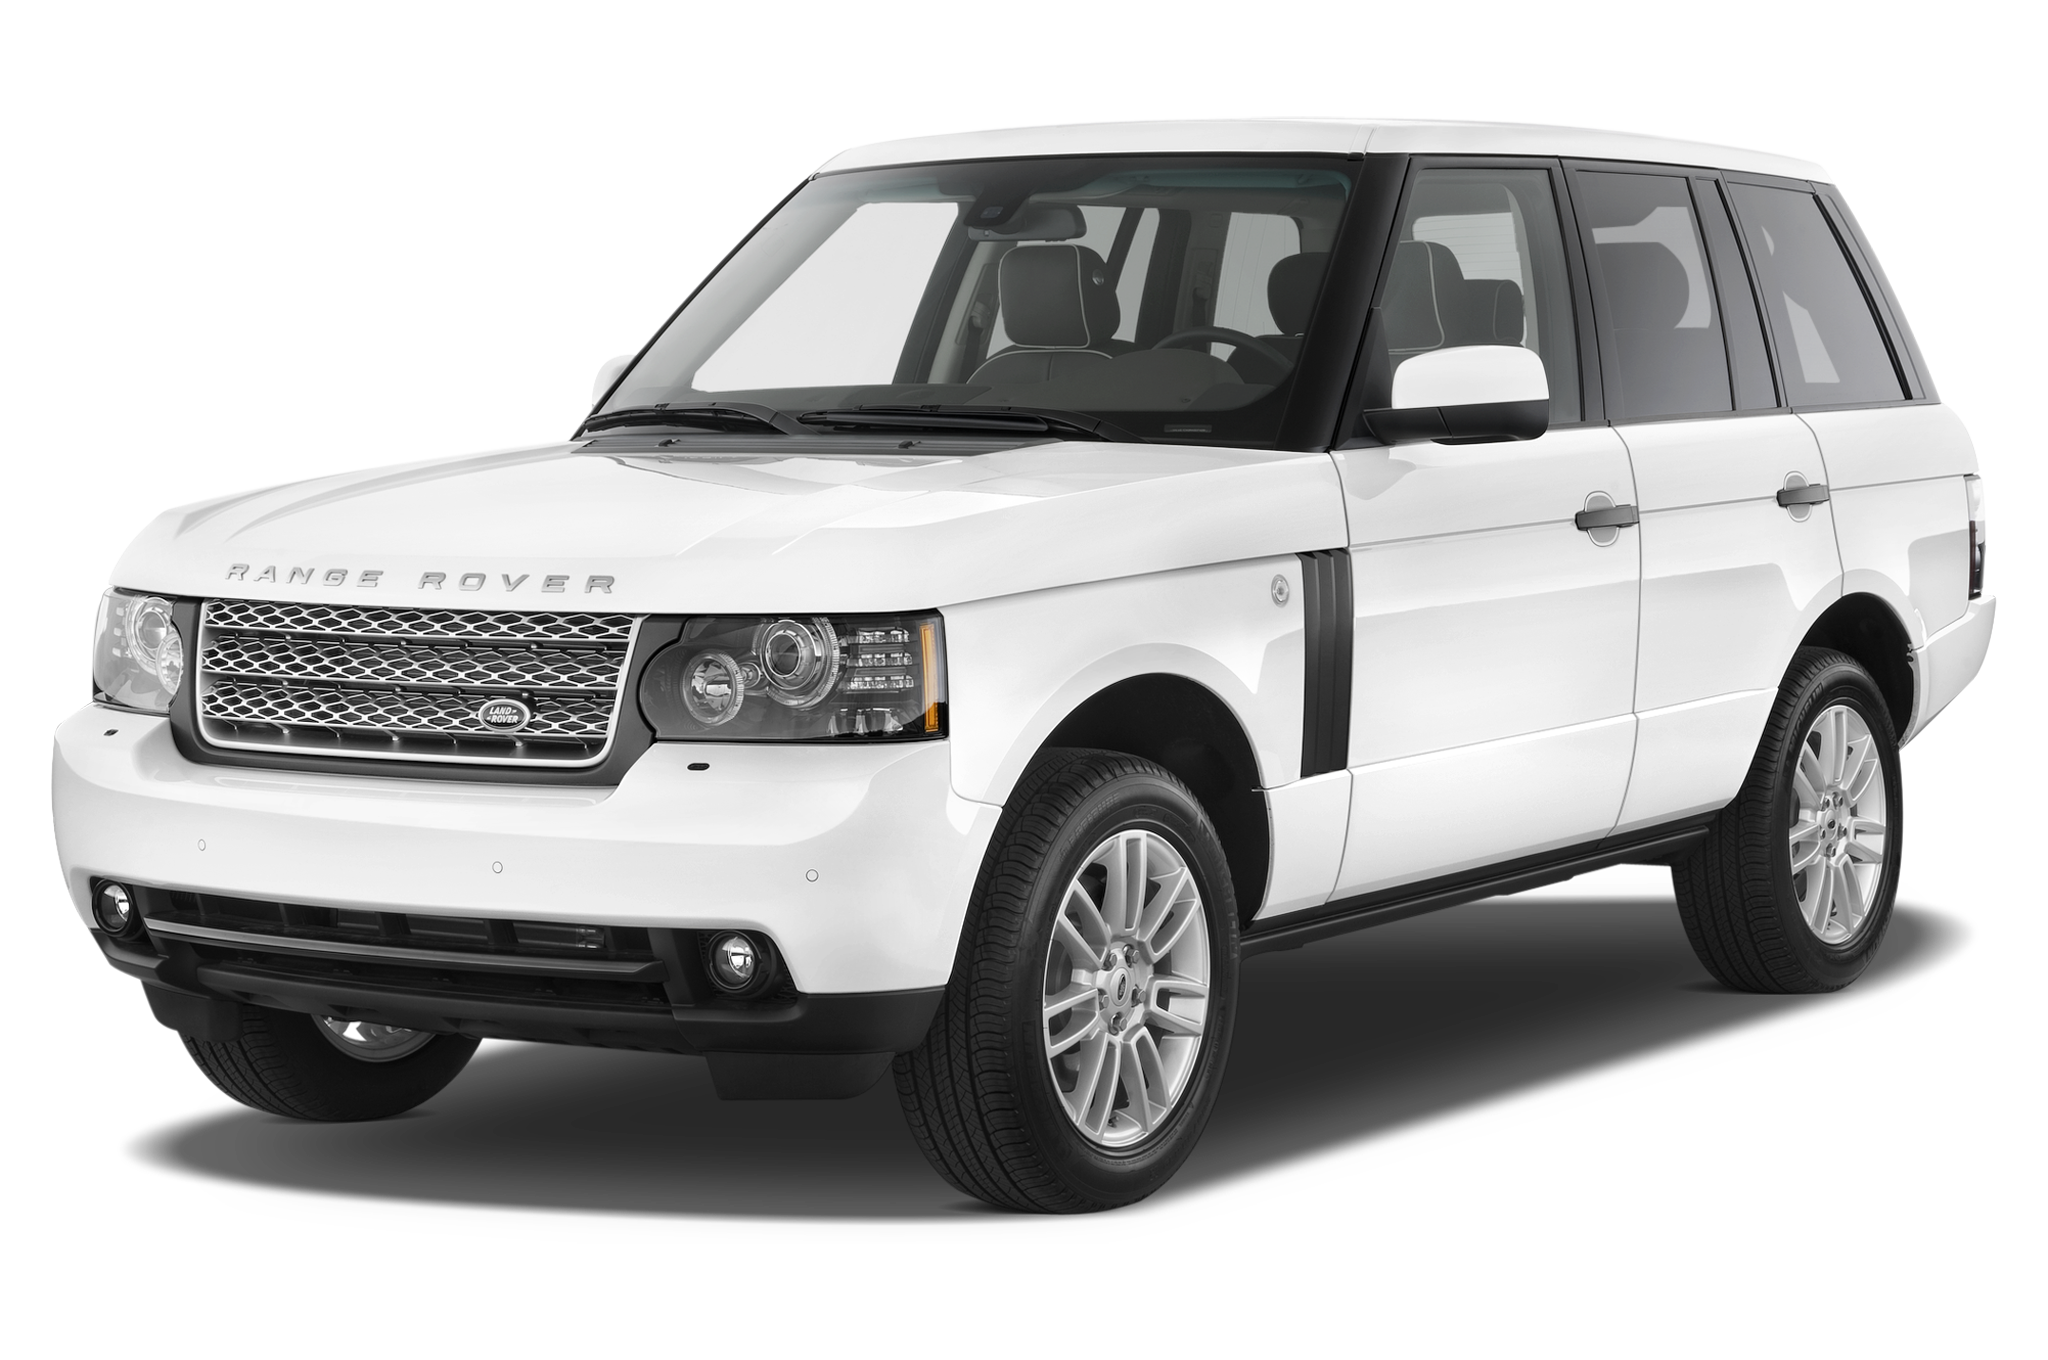 2010 land rover range rover sport land rover luxury suv. Black Bedroom Furniture Sets. Home Design Ideas